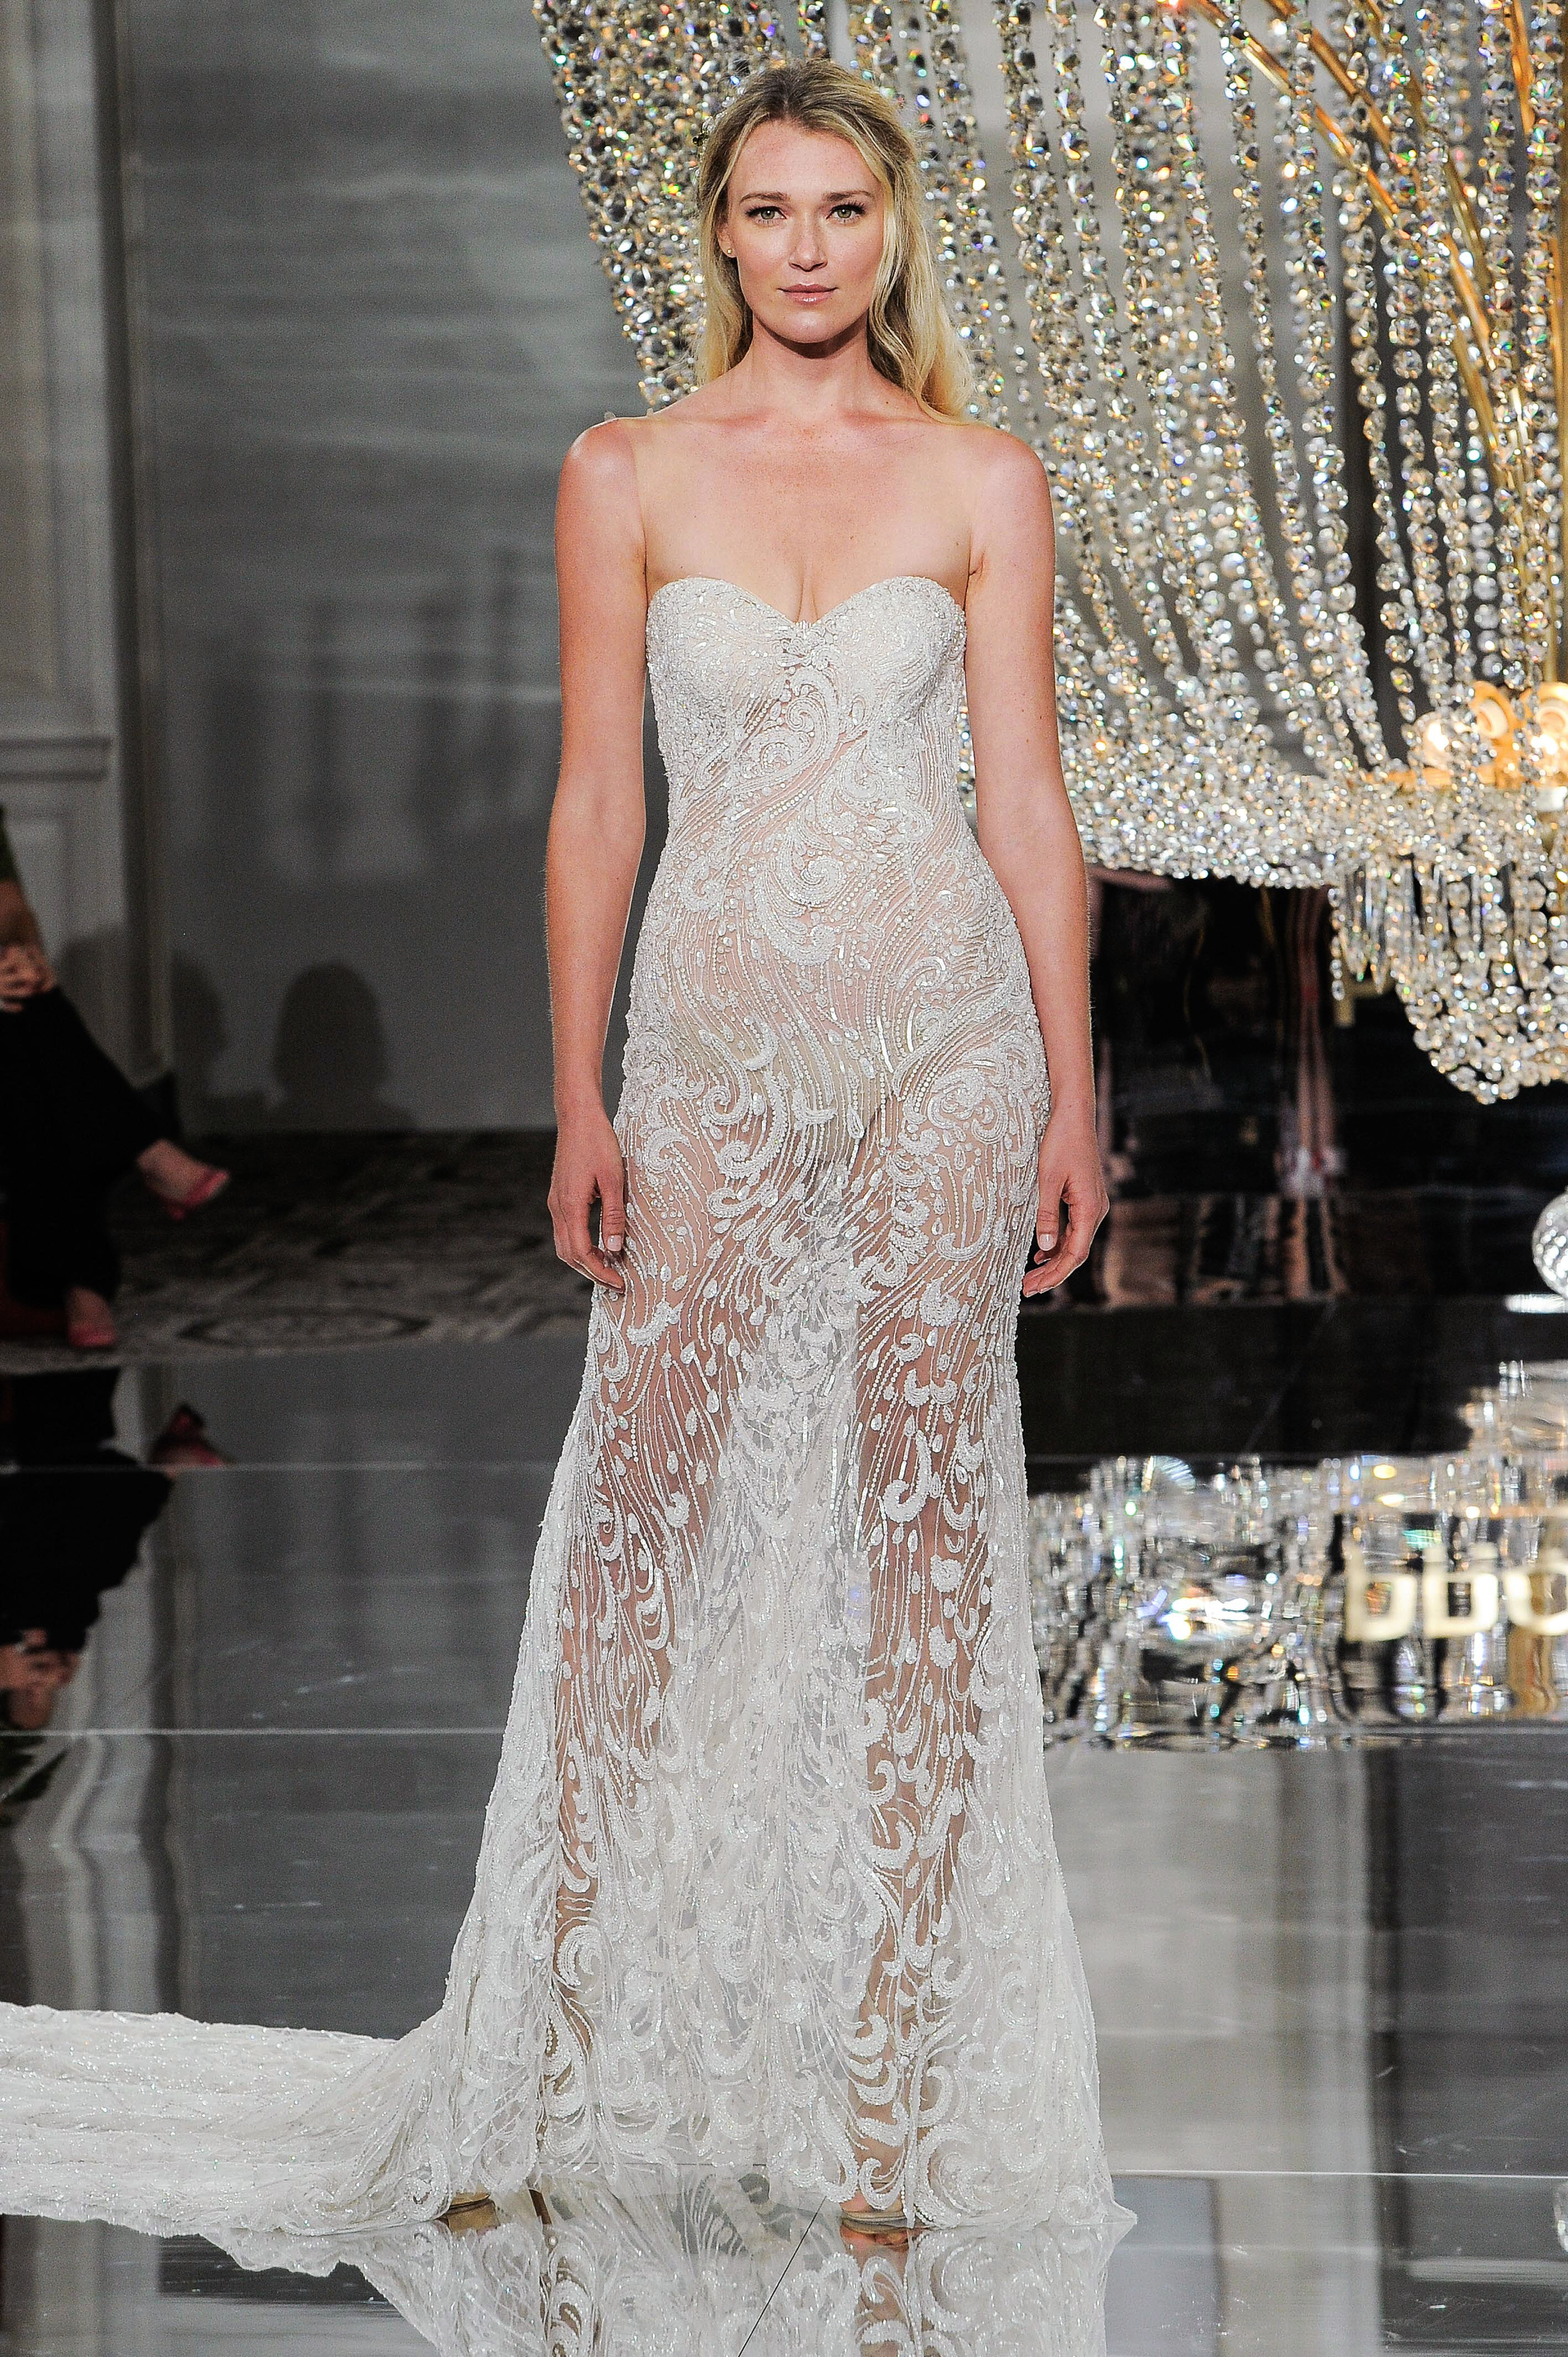 pronovias wedding dress fall 2018 illusion strapless embellished sheer